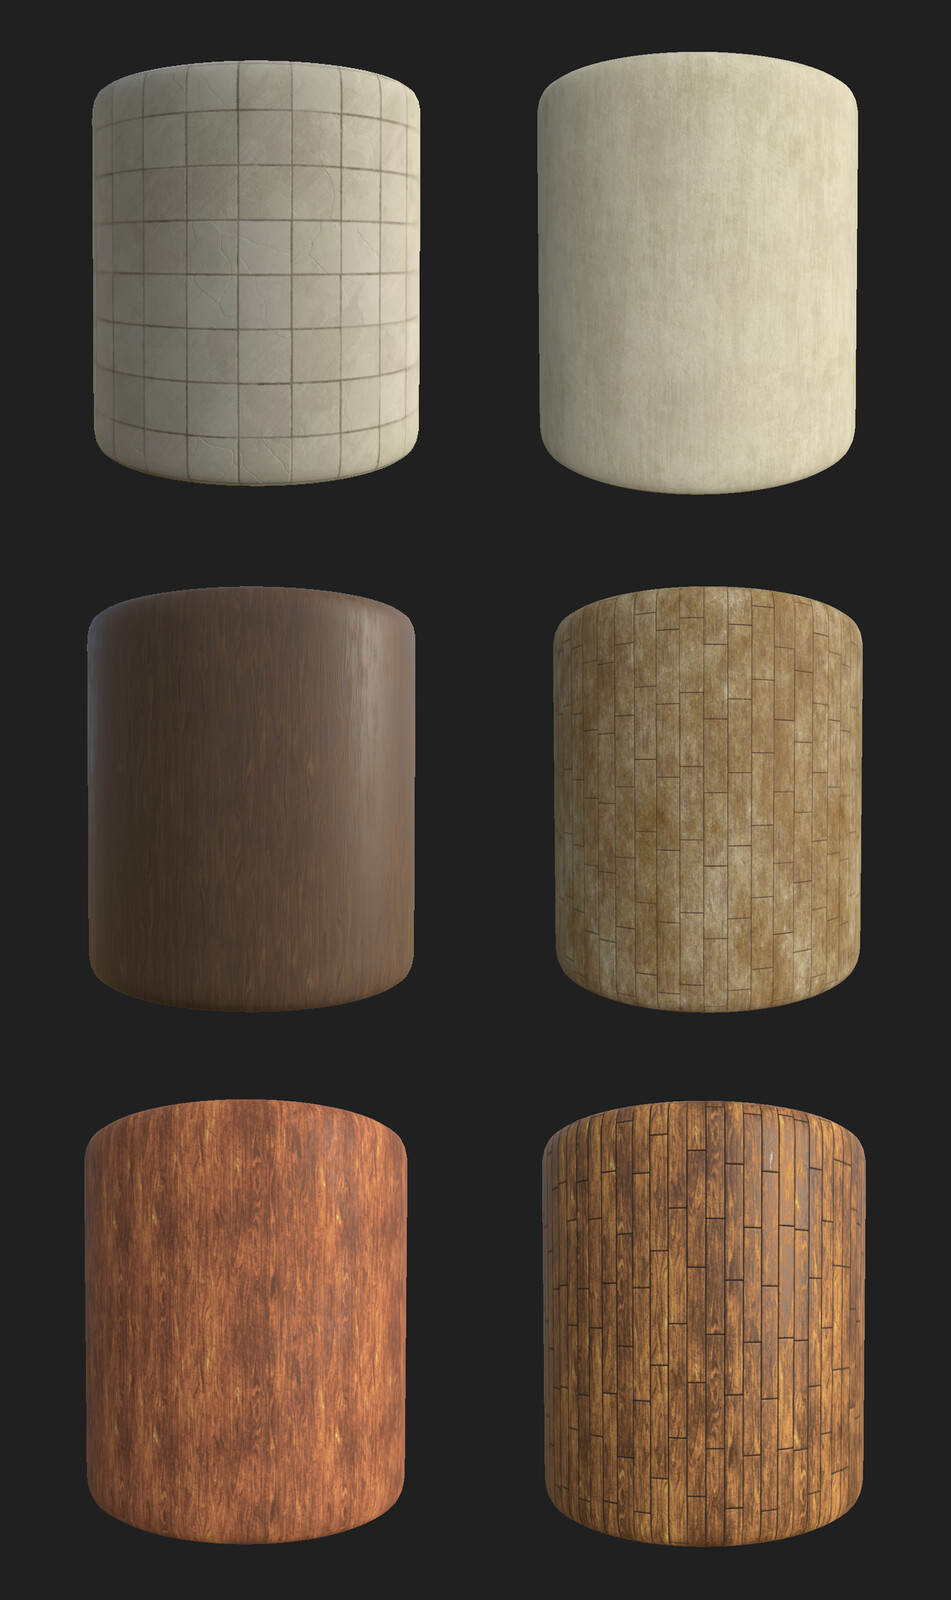 Various materials from Substance Designer for base tiling textures.